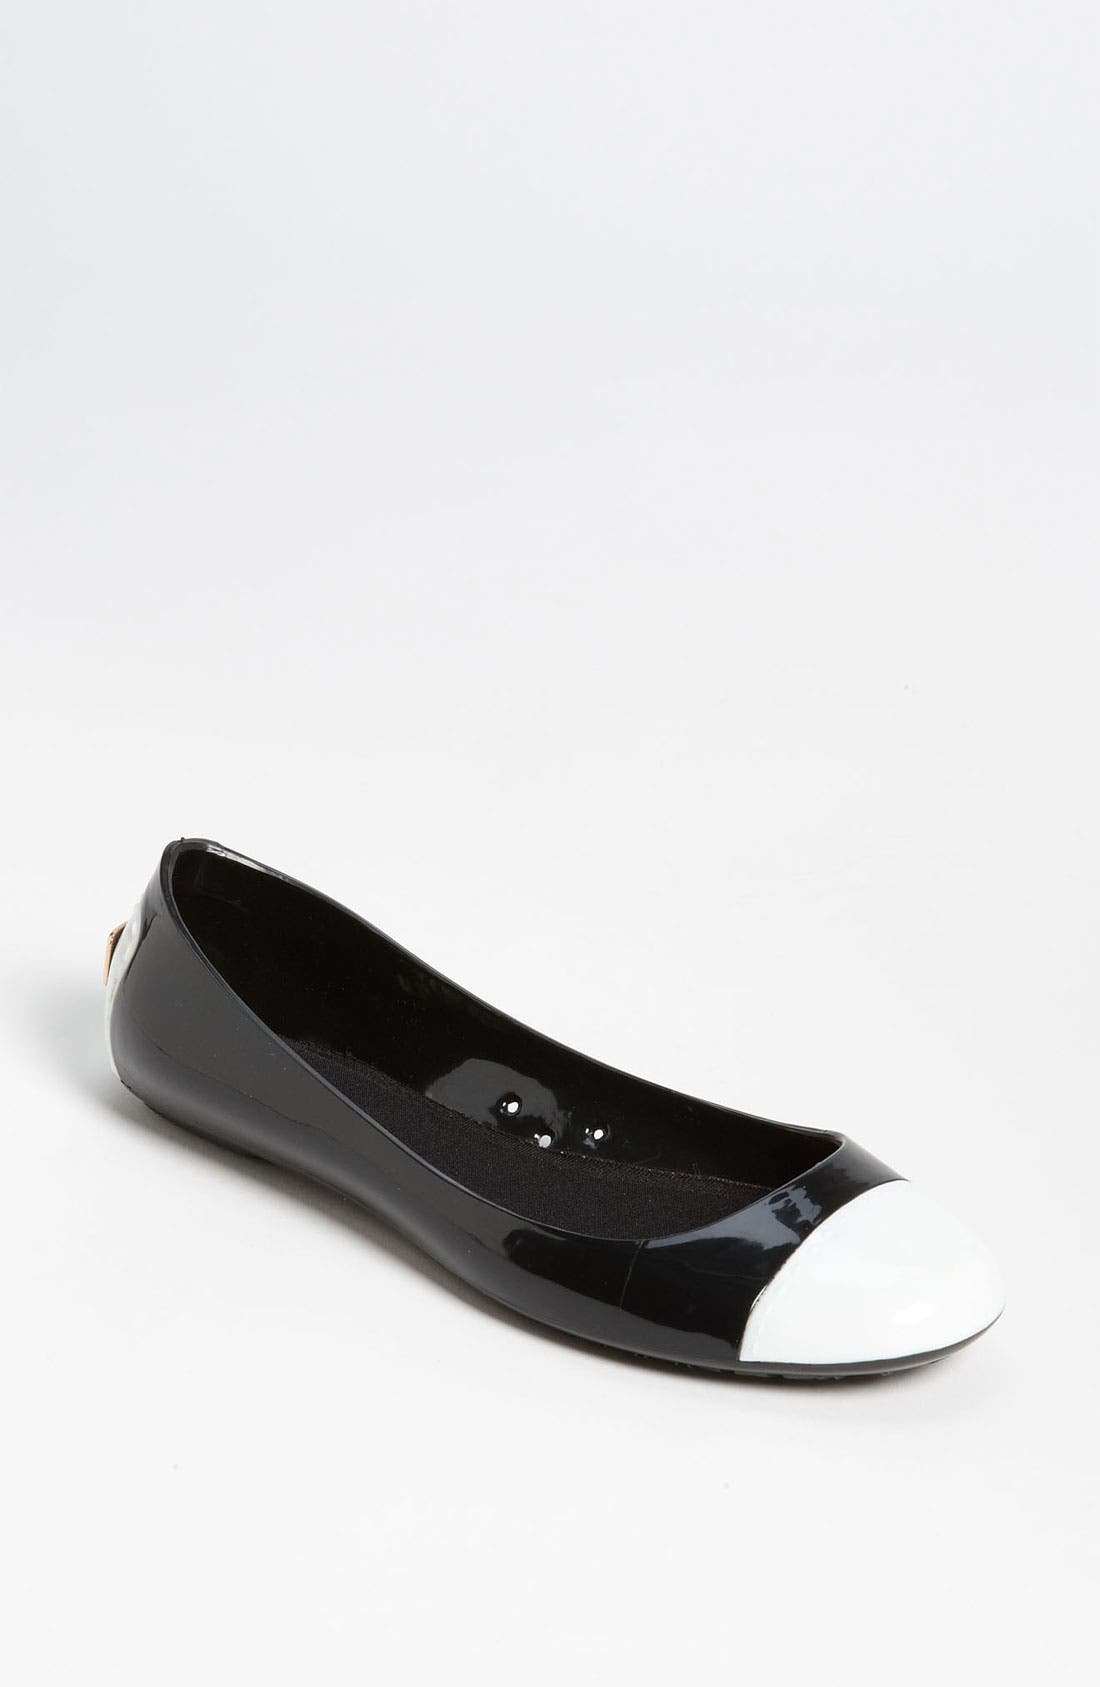 Alternate Image 1 Selected - kate spade new york 'jennie' flat